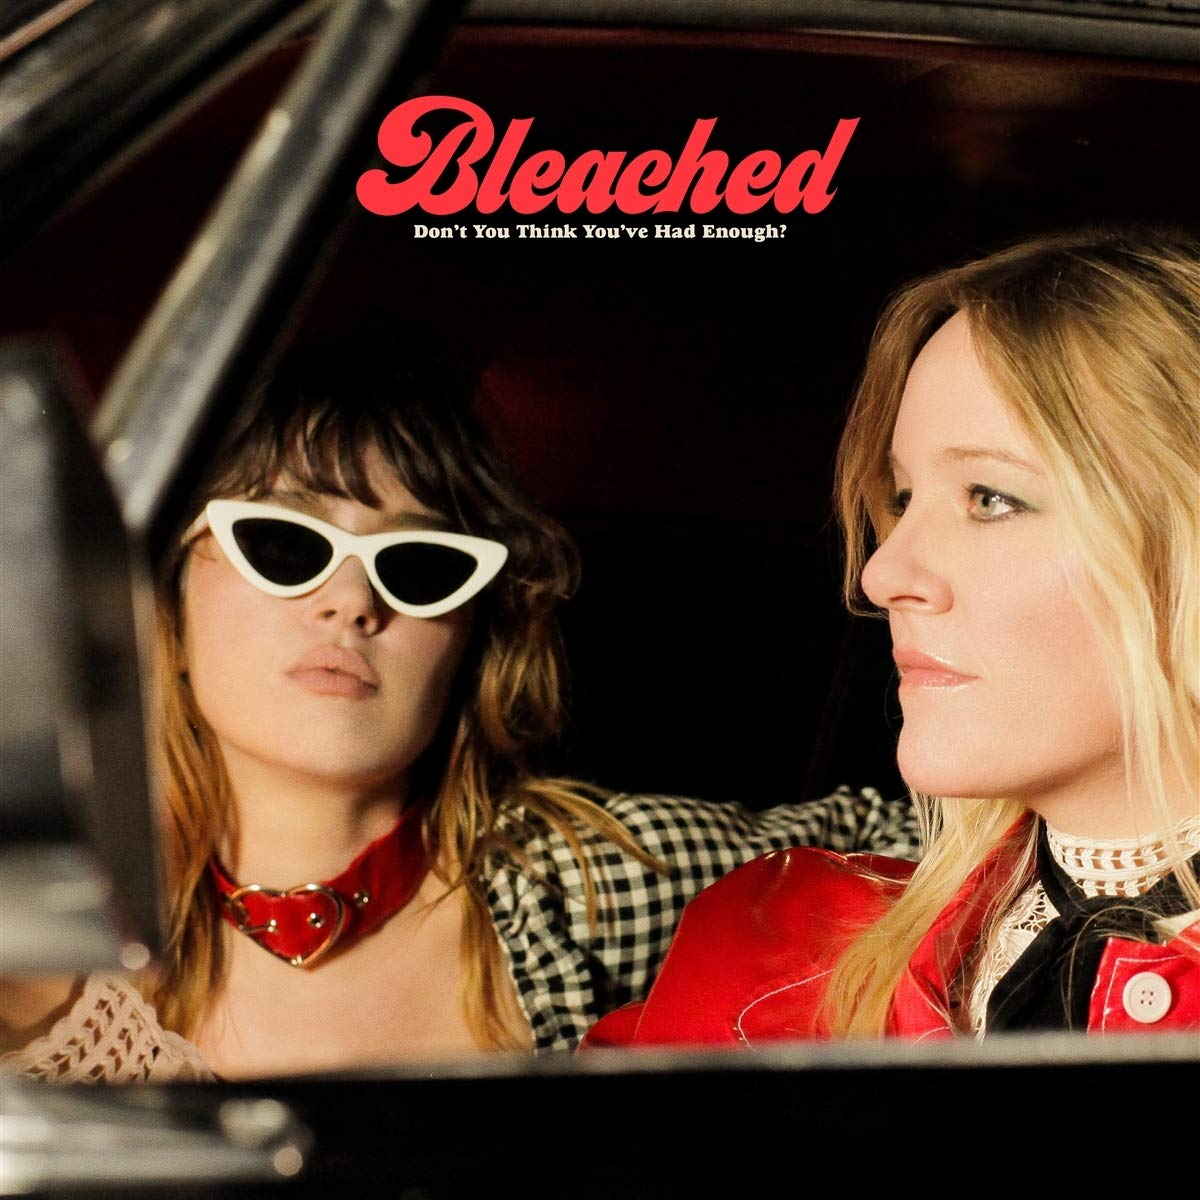 Bleached - Don't You Think You've Had Enough? [Limited Edition LP]